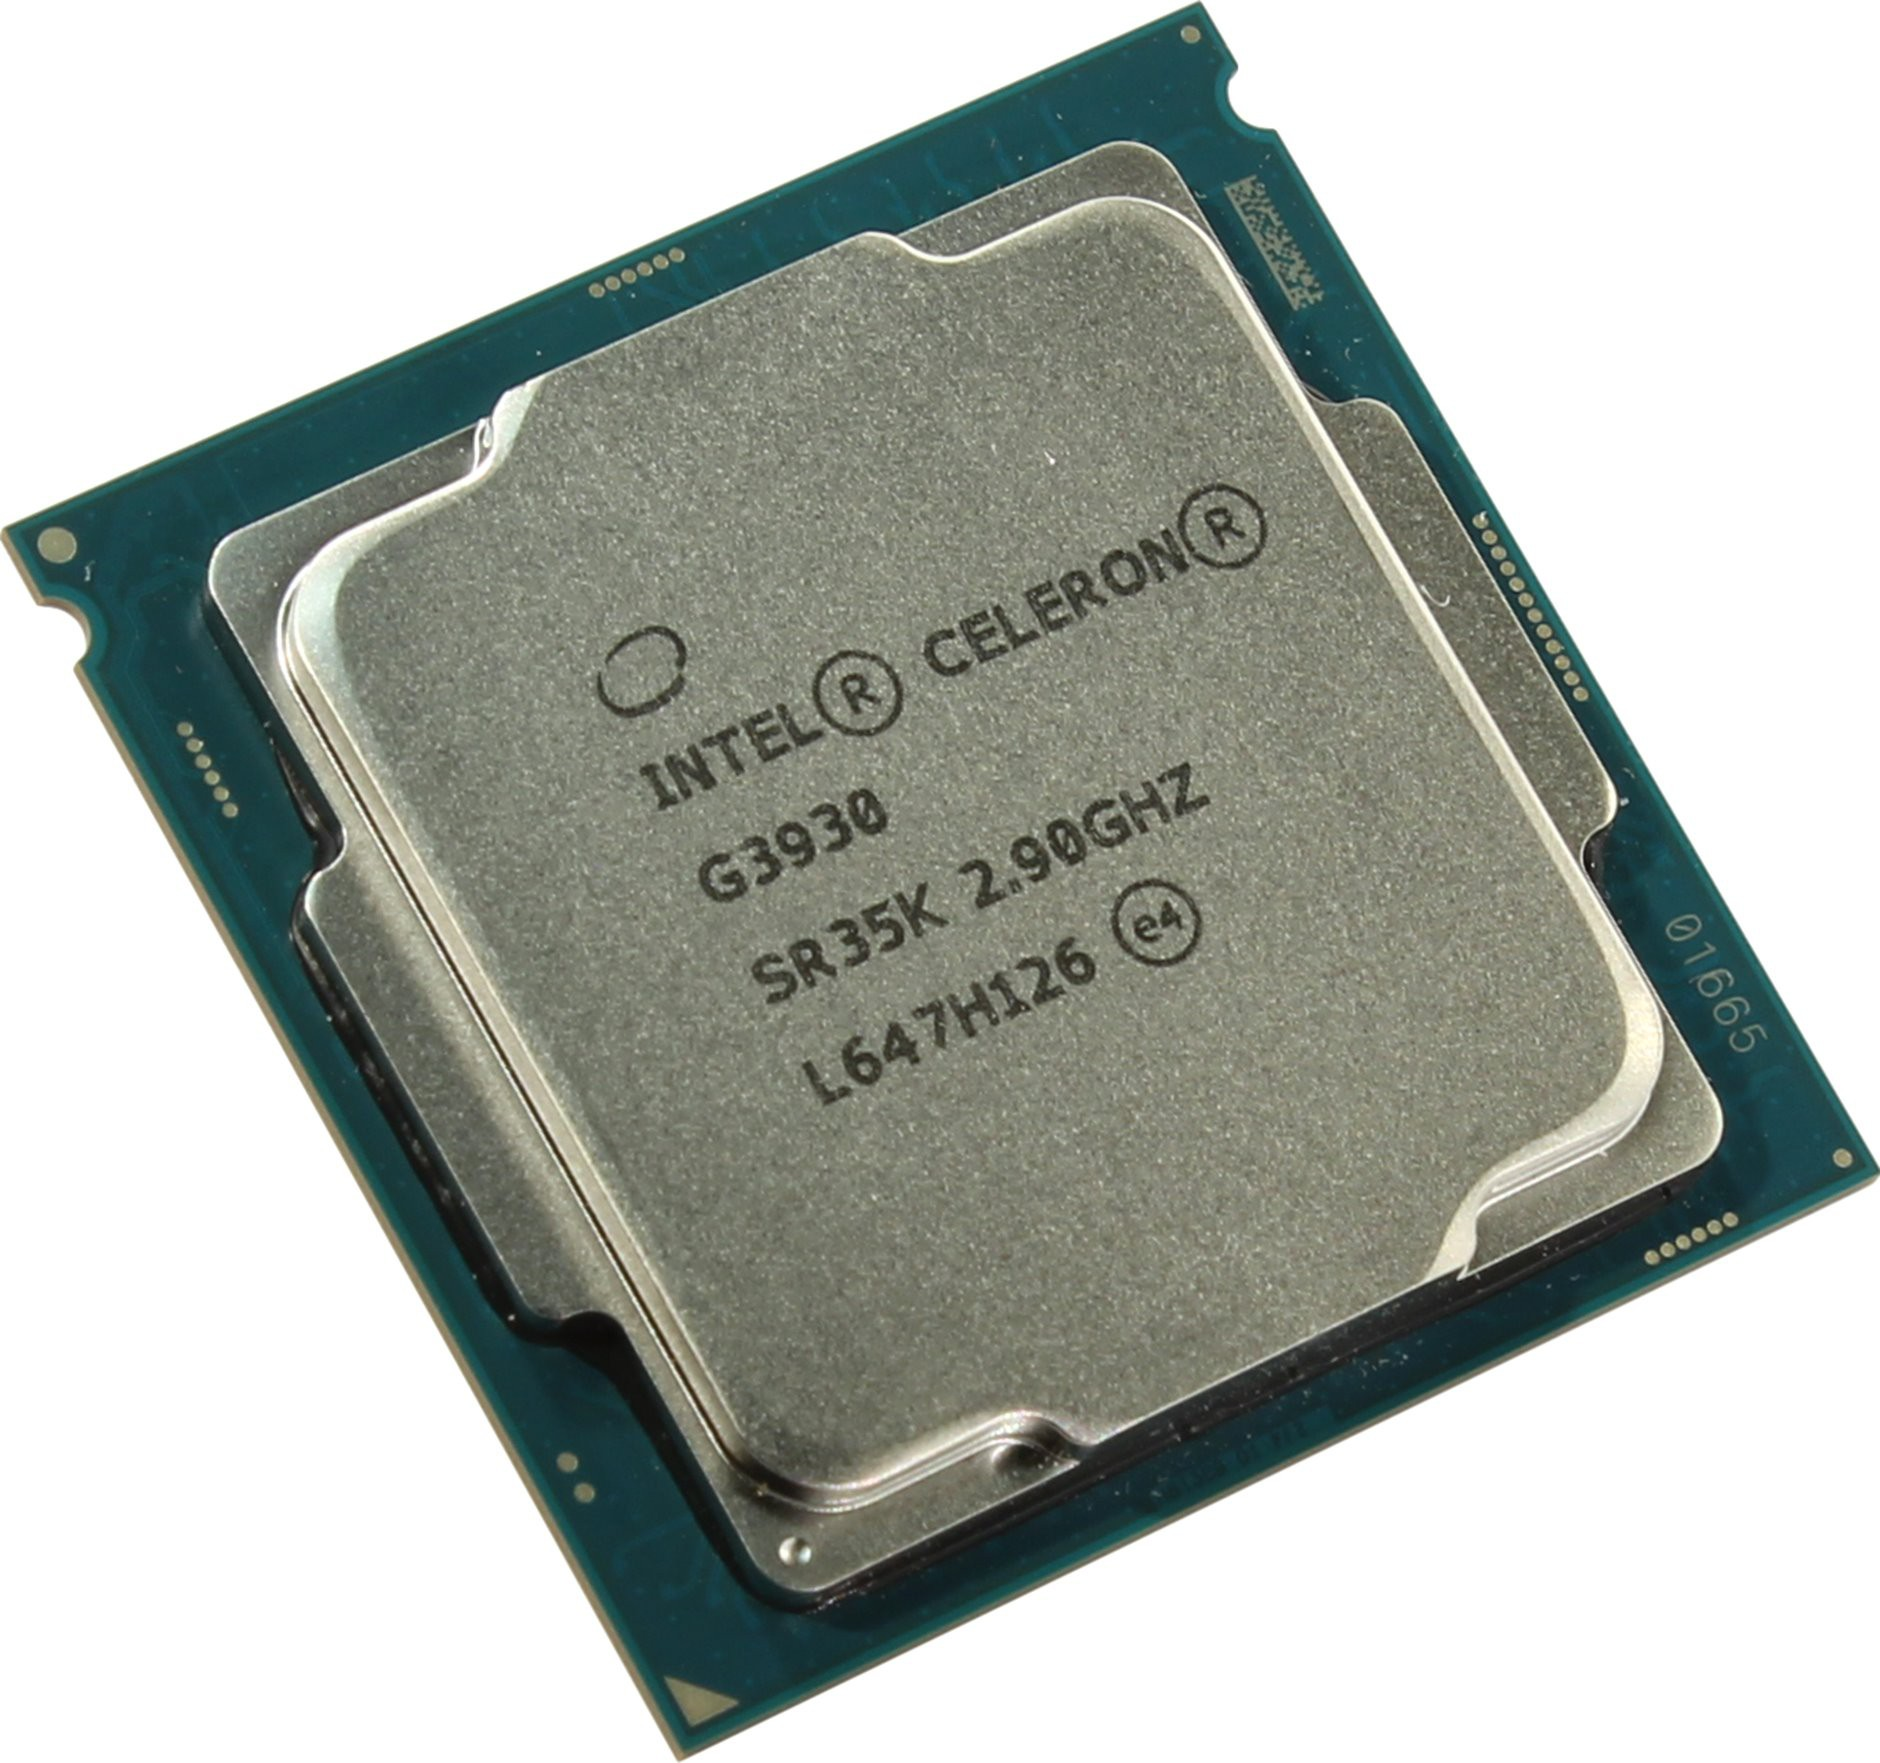 Процессор Intel Celeron G3930 2.9GHz, 2core, 2Mb, HD Graphics 610, 51W (Soc1151)